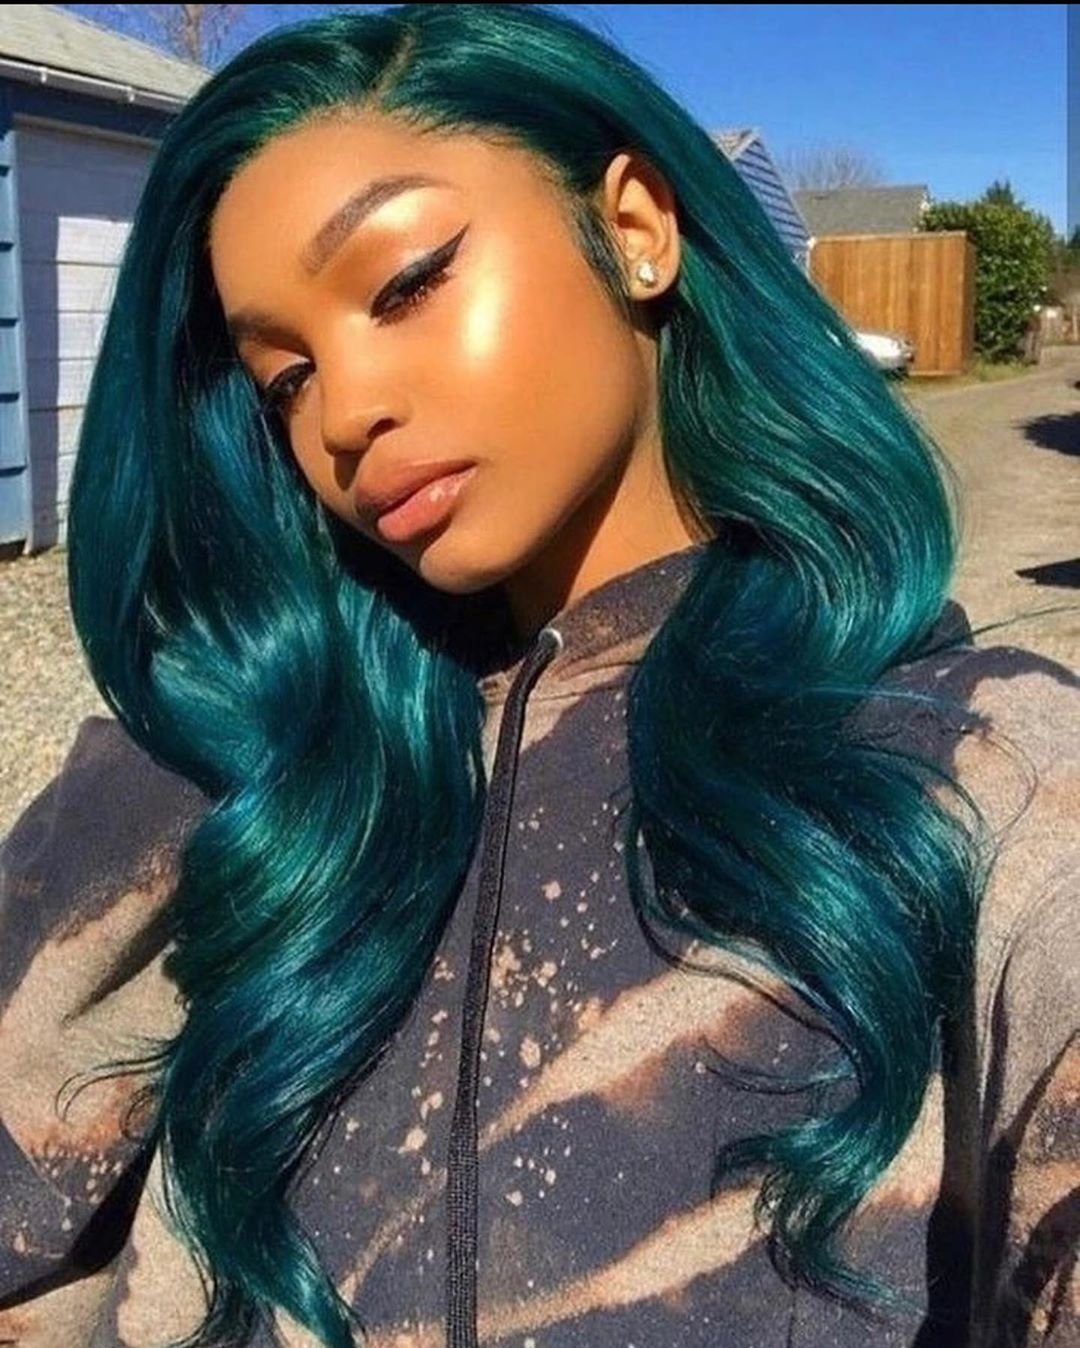 Arabella Human Hair Wigs 613 Blonde Body Wave 13x4 Inch Lace Frontal Wig In 2020 Wig Hairstyles Long Hair Styles Lace Frontal Wig